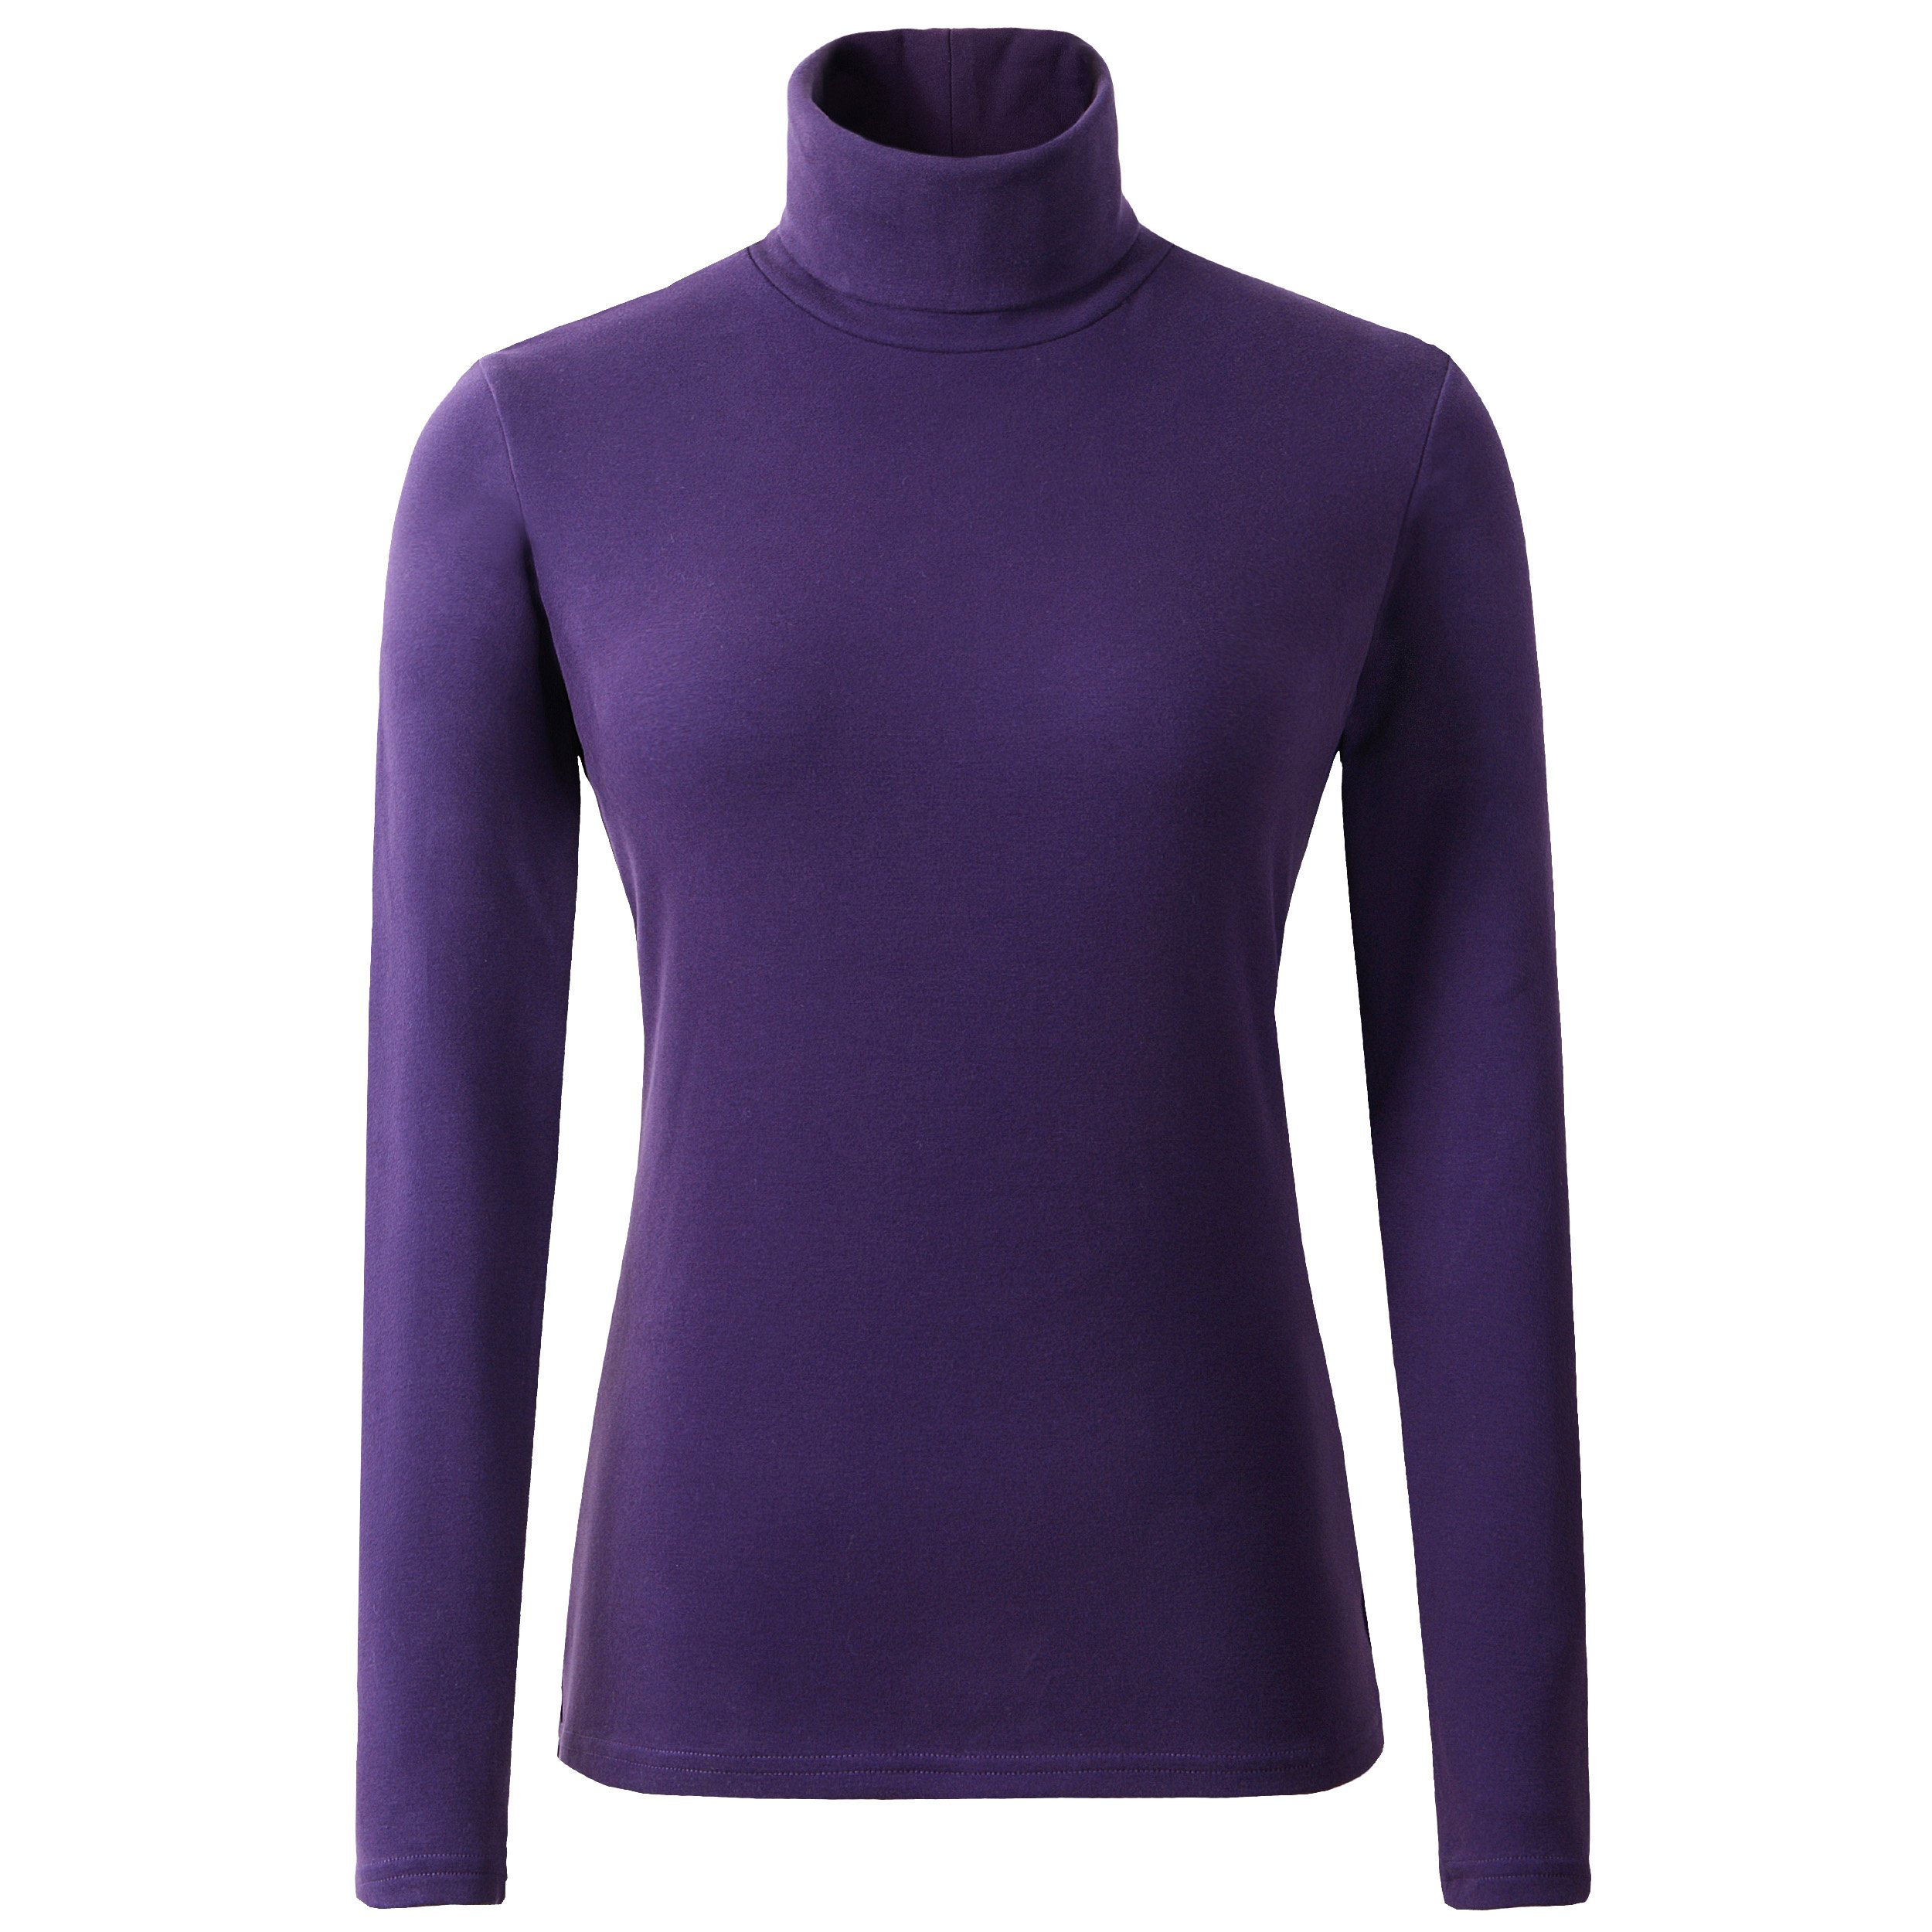 HieasyFit Women's Soft Cotton Turtleneck Top Basic Long Sleeve Pullover Violet M by HieasyFit